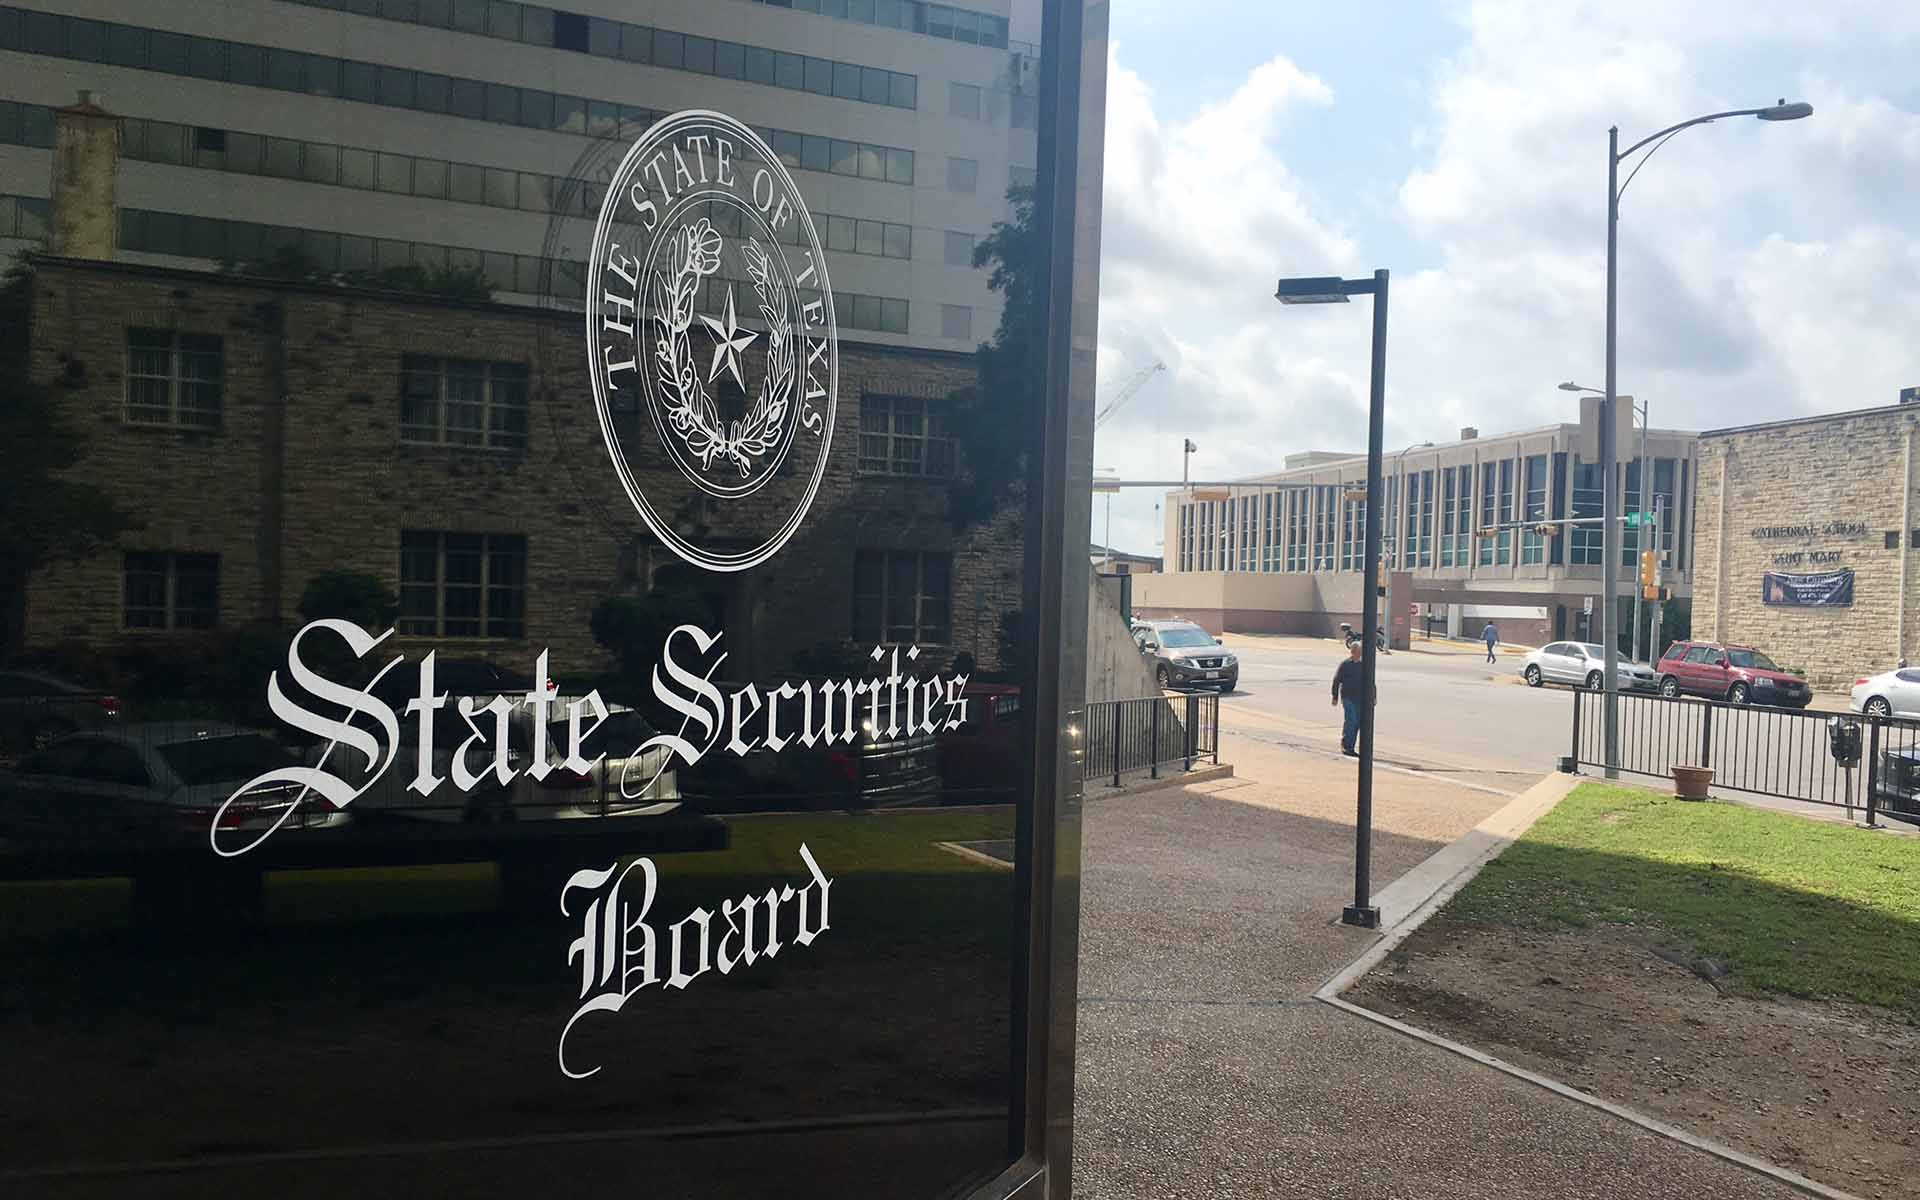 The Texas State Securities Board